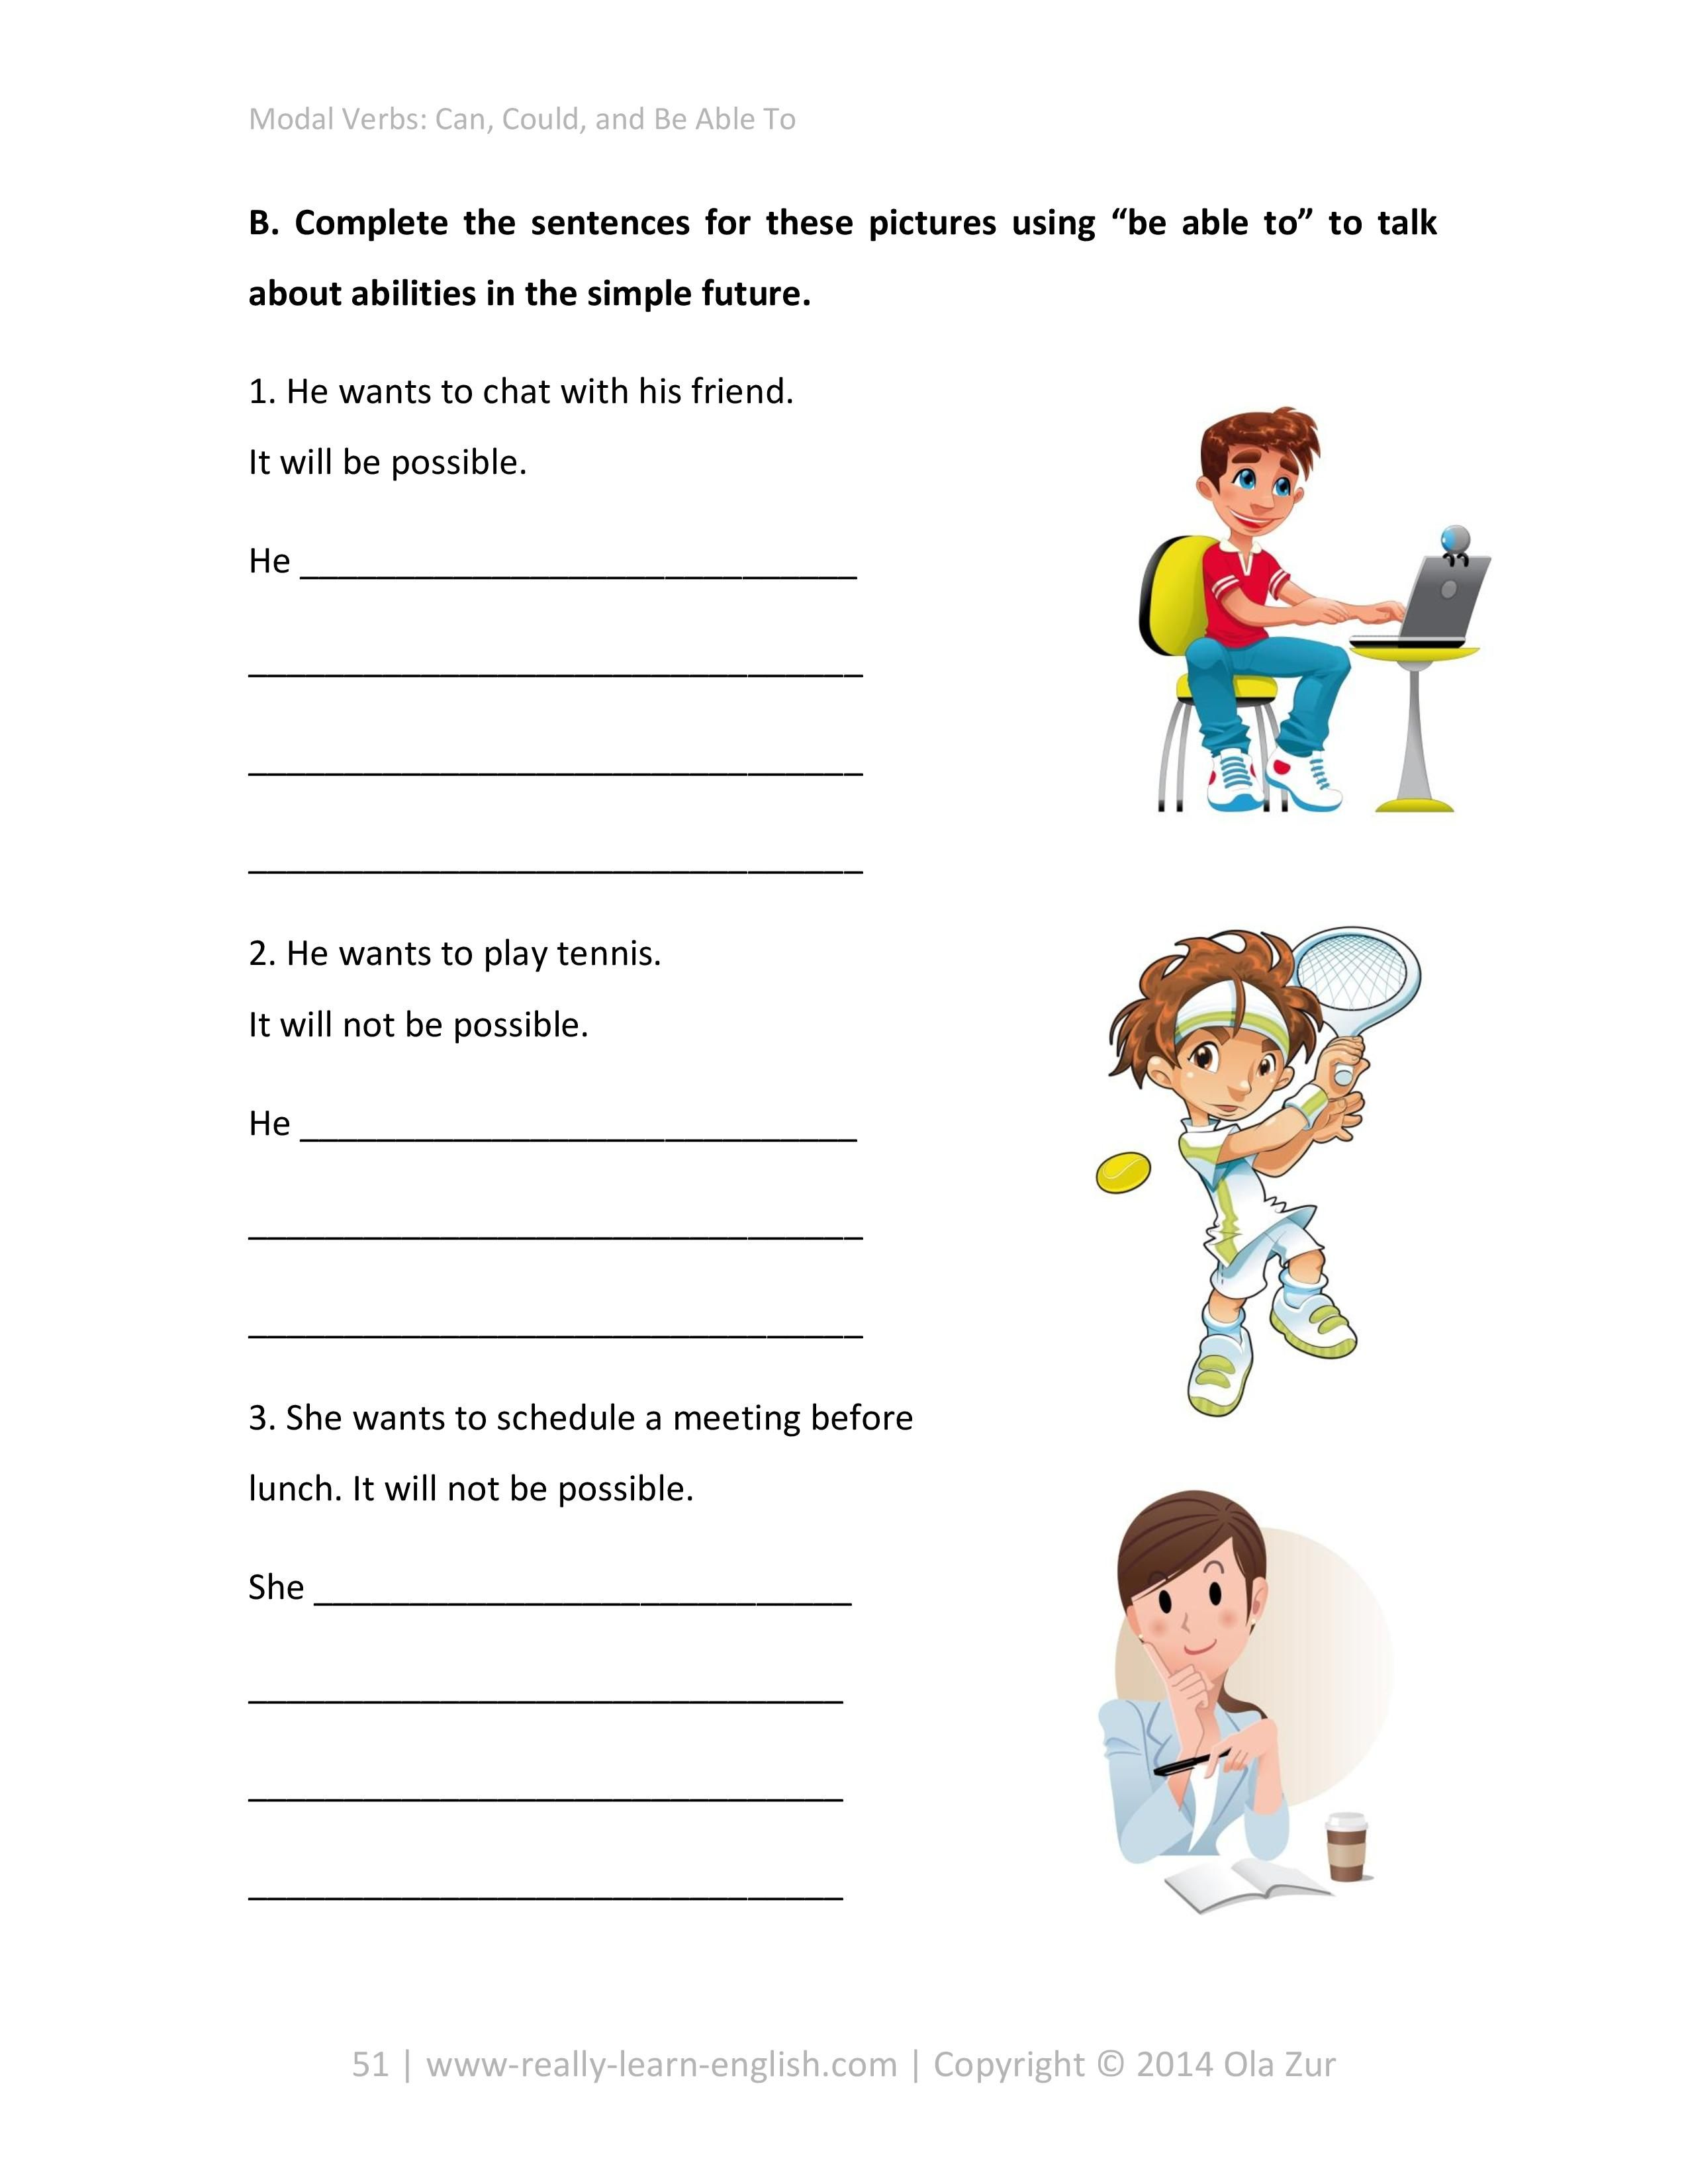 English Modal Verbs Step By Step Illustrated Workbooks